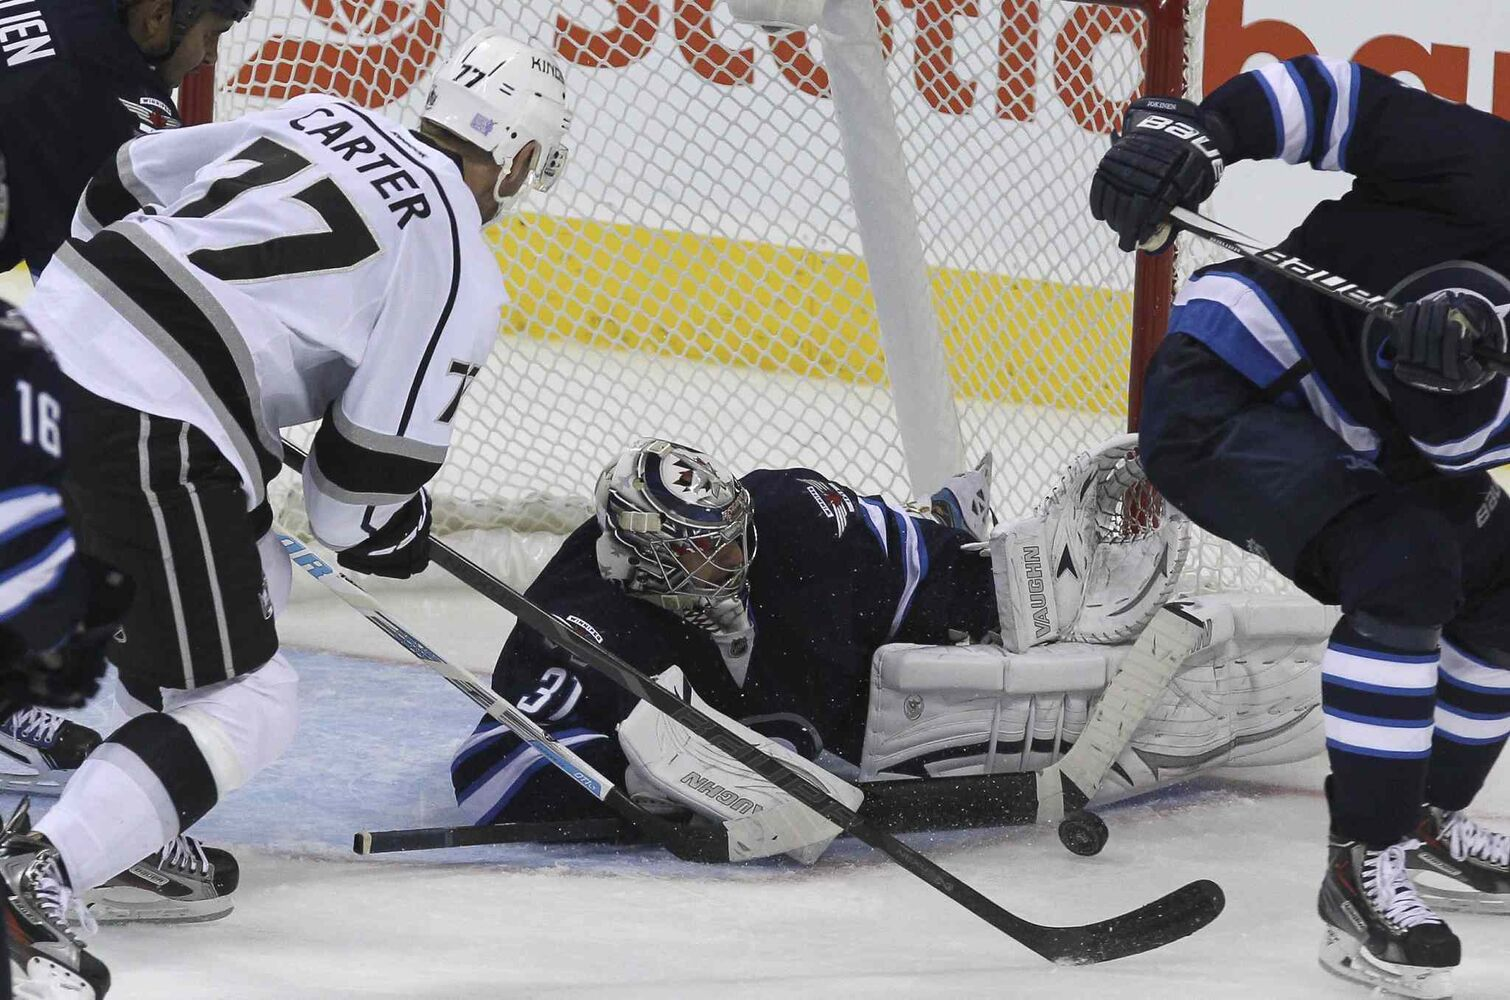 Winnipeg Jets' goaltender Ondrej Pavelec (31) makes a save while Los Angeles Kings' Jeff Carter (77) goes for a rebound in the third period.